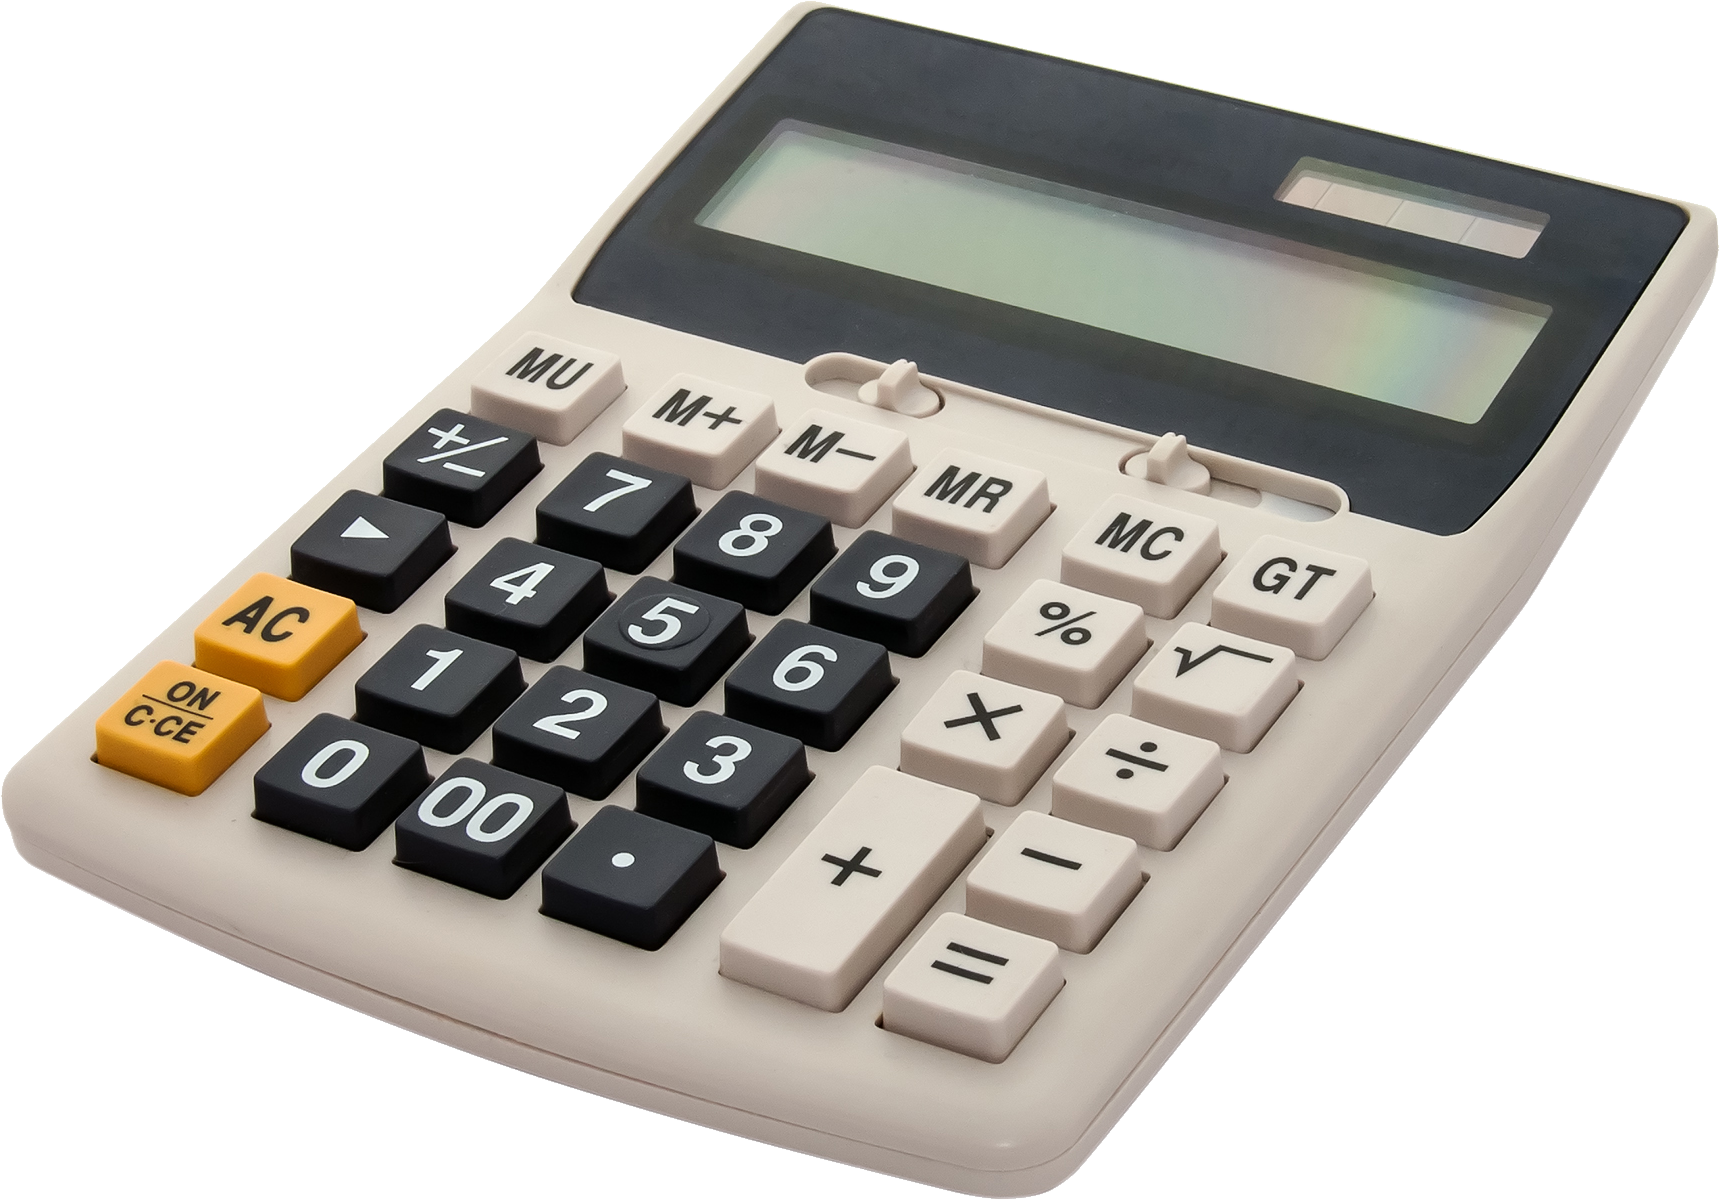 Drawing tab 3d. Calculator png image free